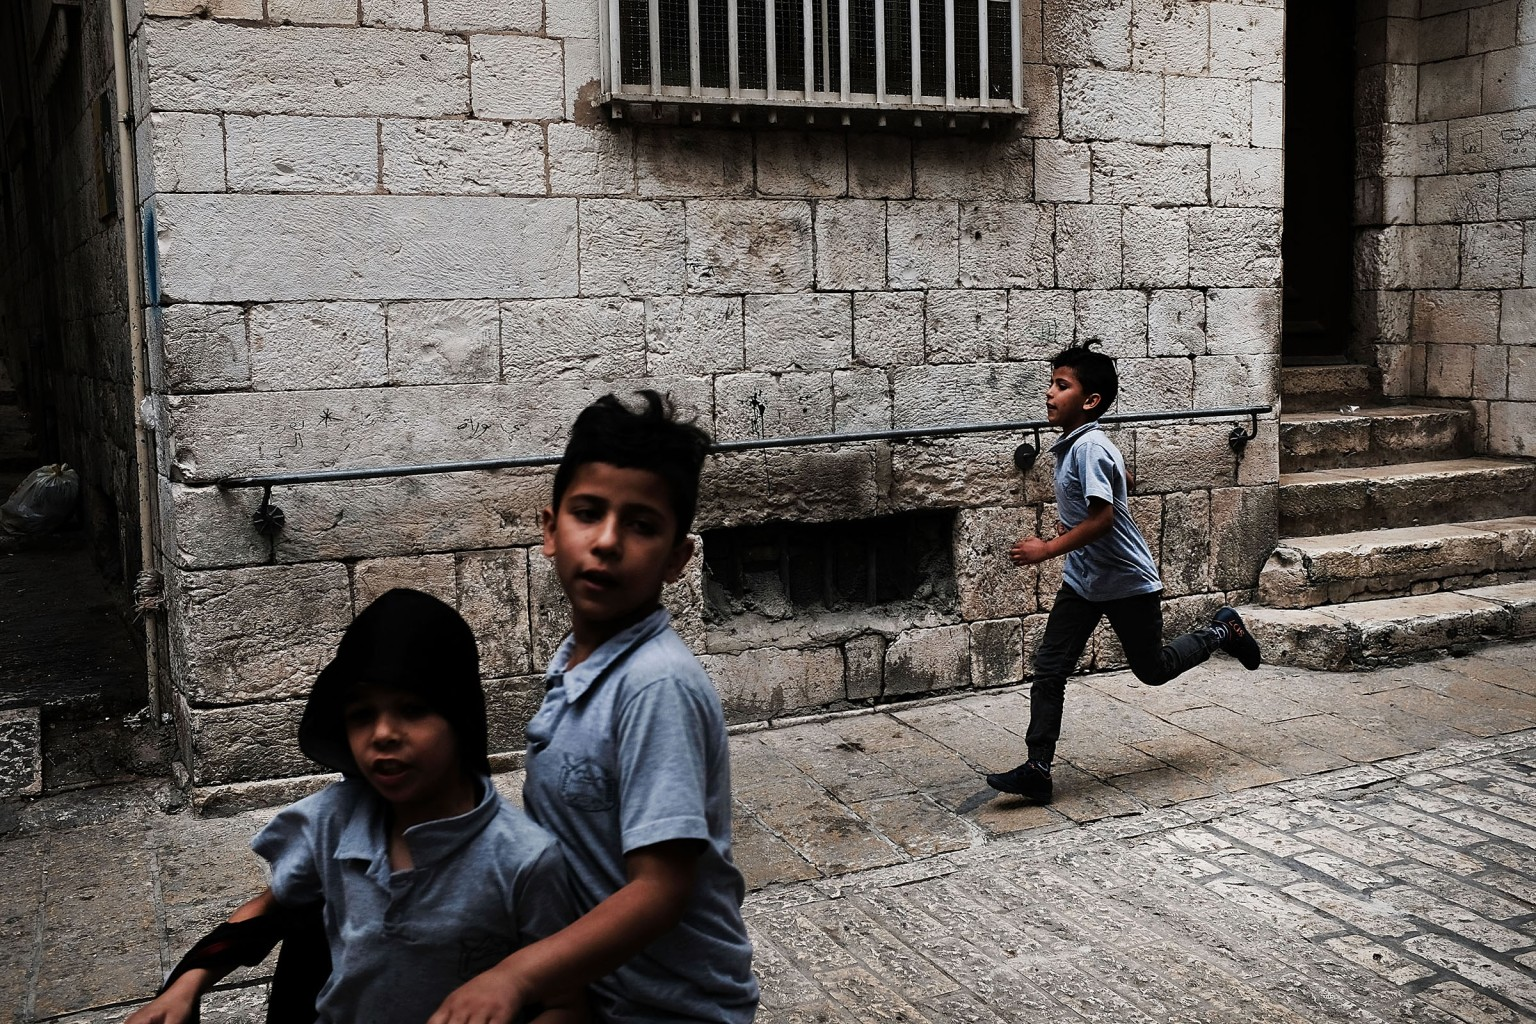 Children run through the streets of the Old City of Jerusalem on May 9. The Trump administration in December announced it would move the U.S. embassy in Israel from Tel Aviv to Jerusalem on May 14. The city's Israeli-annexed eastern sector has been long sought for a future Palestinian capital. Spencer Platt/Getty Images